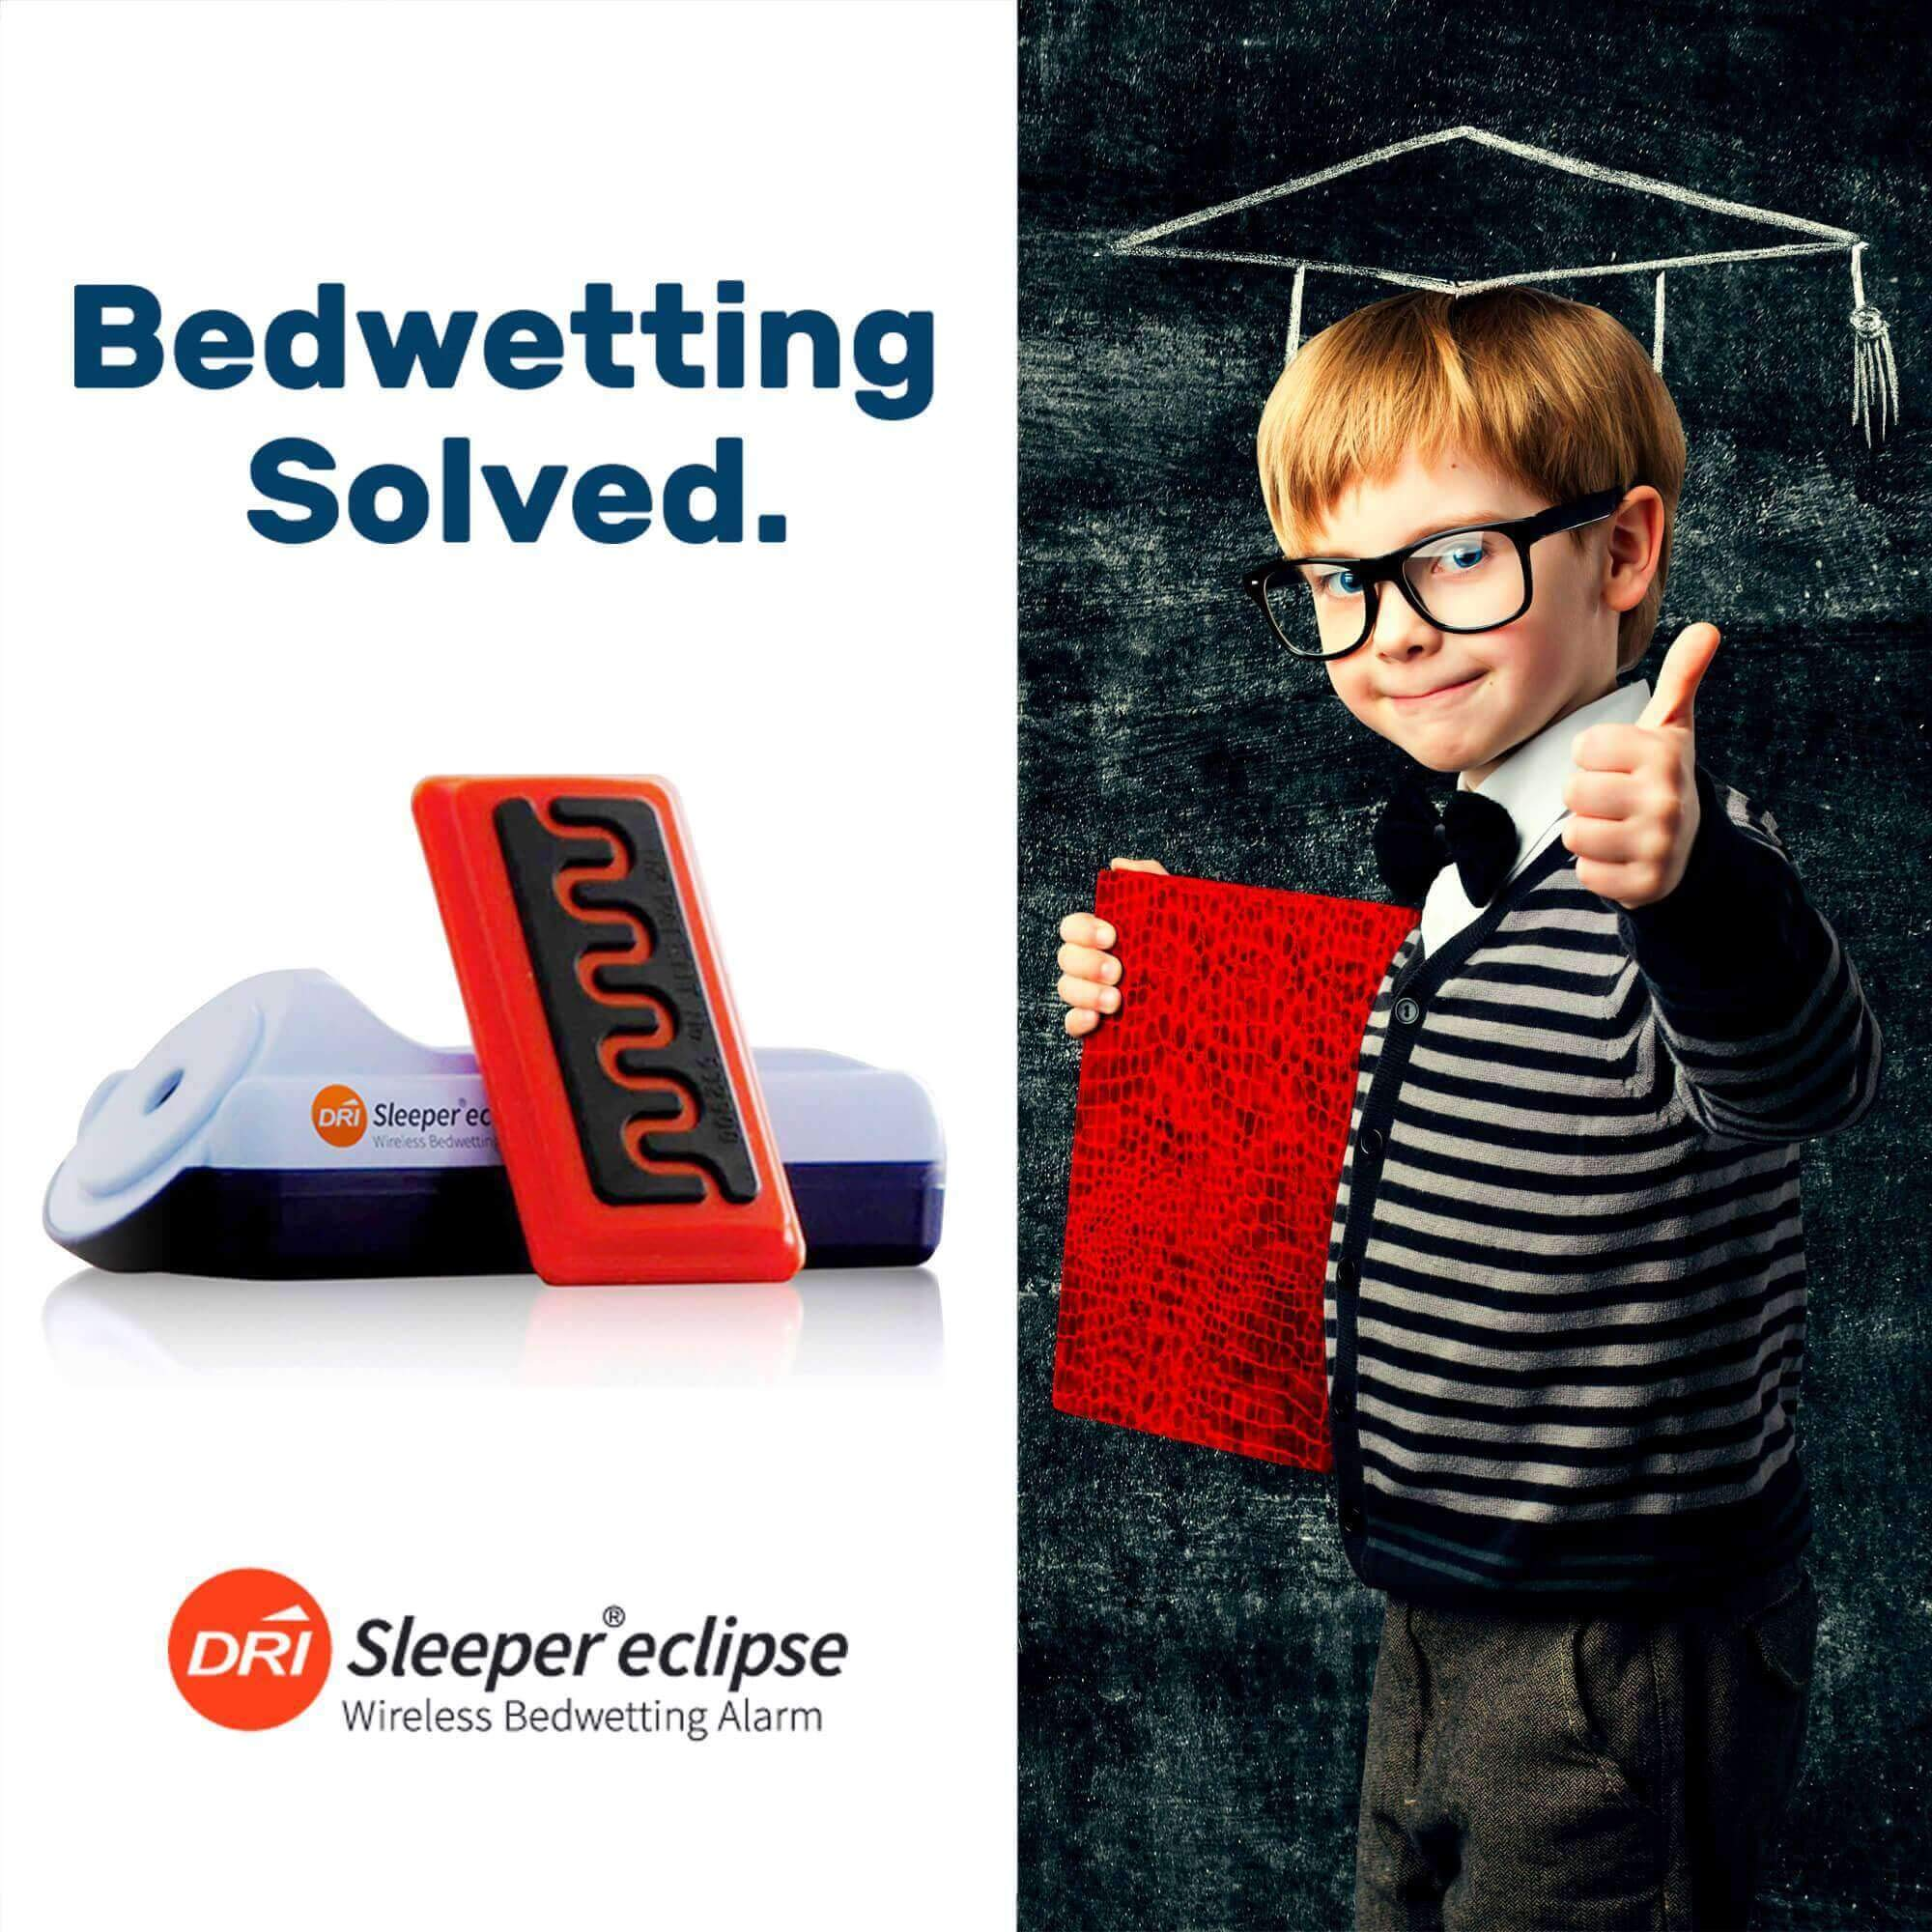 DRI Eclipse Wireless Bedwetting Alarm